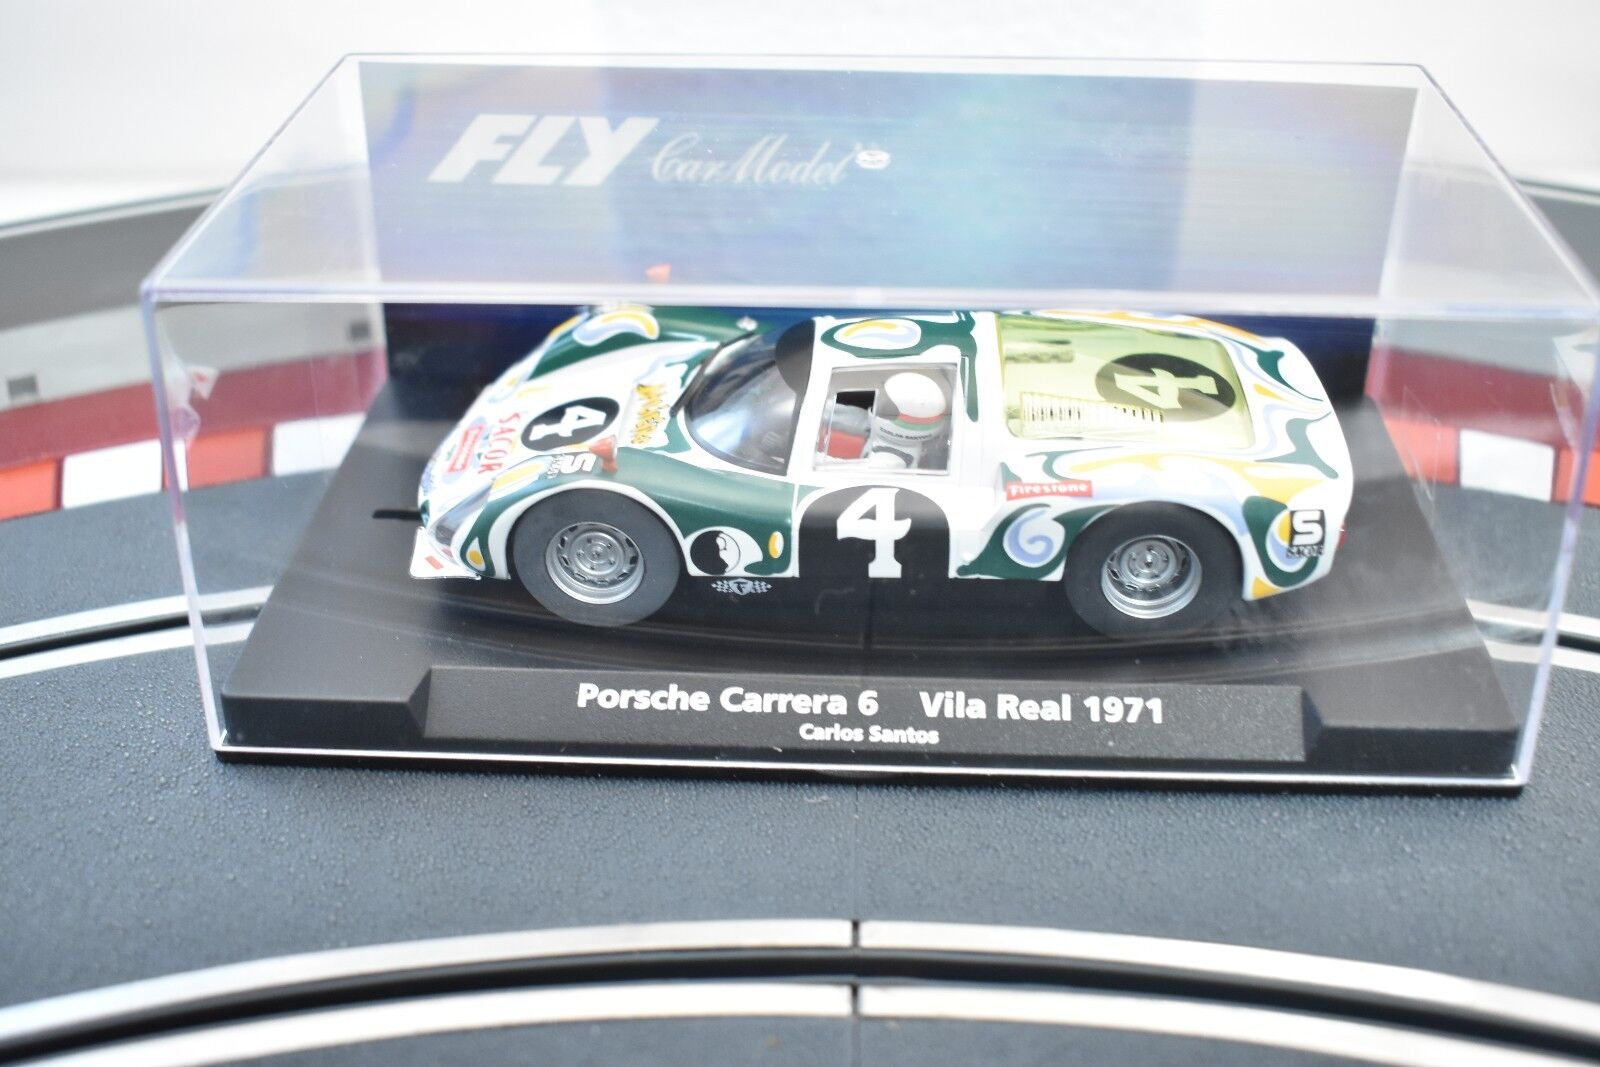 FLY CAR MODEL 1 32 SLOT CAR PORSCHE CARRERA 6 VILA REAL 1971 CARLO SANTOS